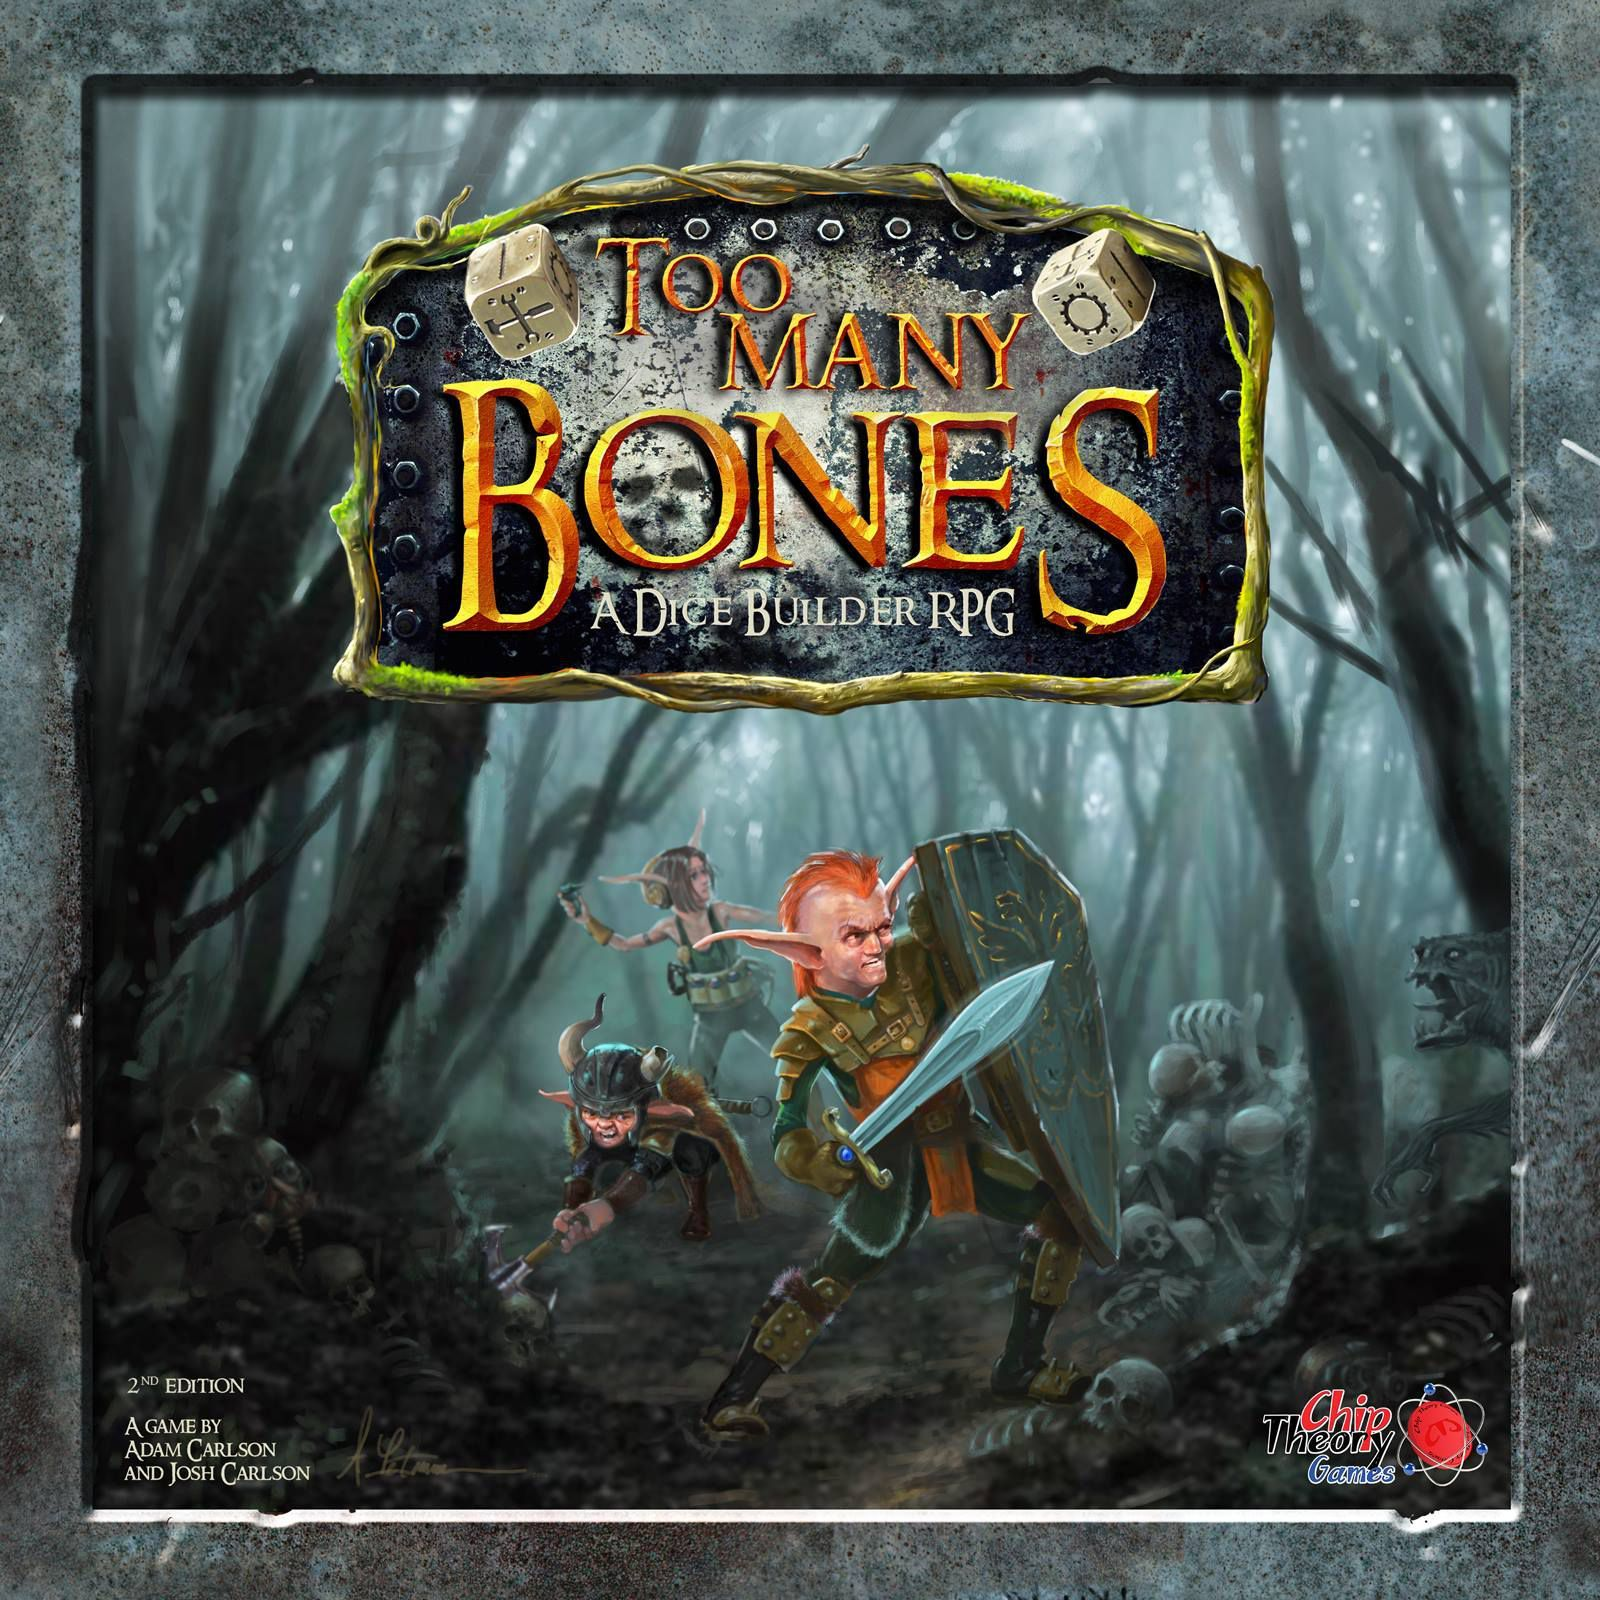 Main image for Too Many Bones